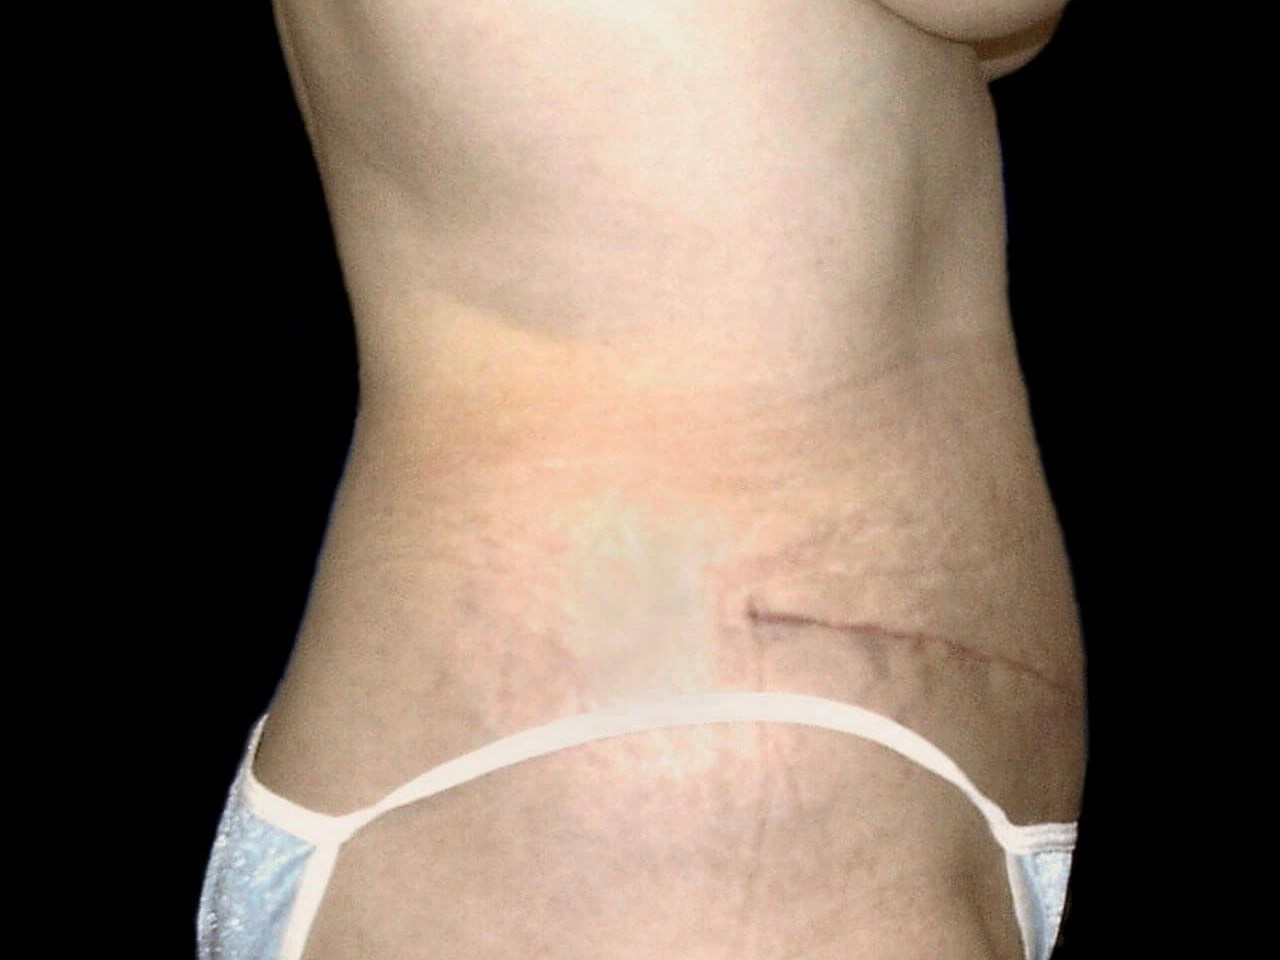 ROCKWALL, TEXAS WOMAN GETS FLAT ABS AND SMALLER WAIST WITH A TUMMY TUCK.